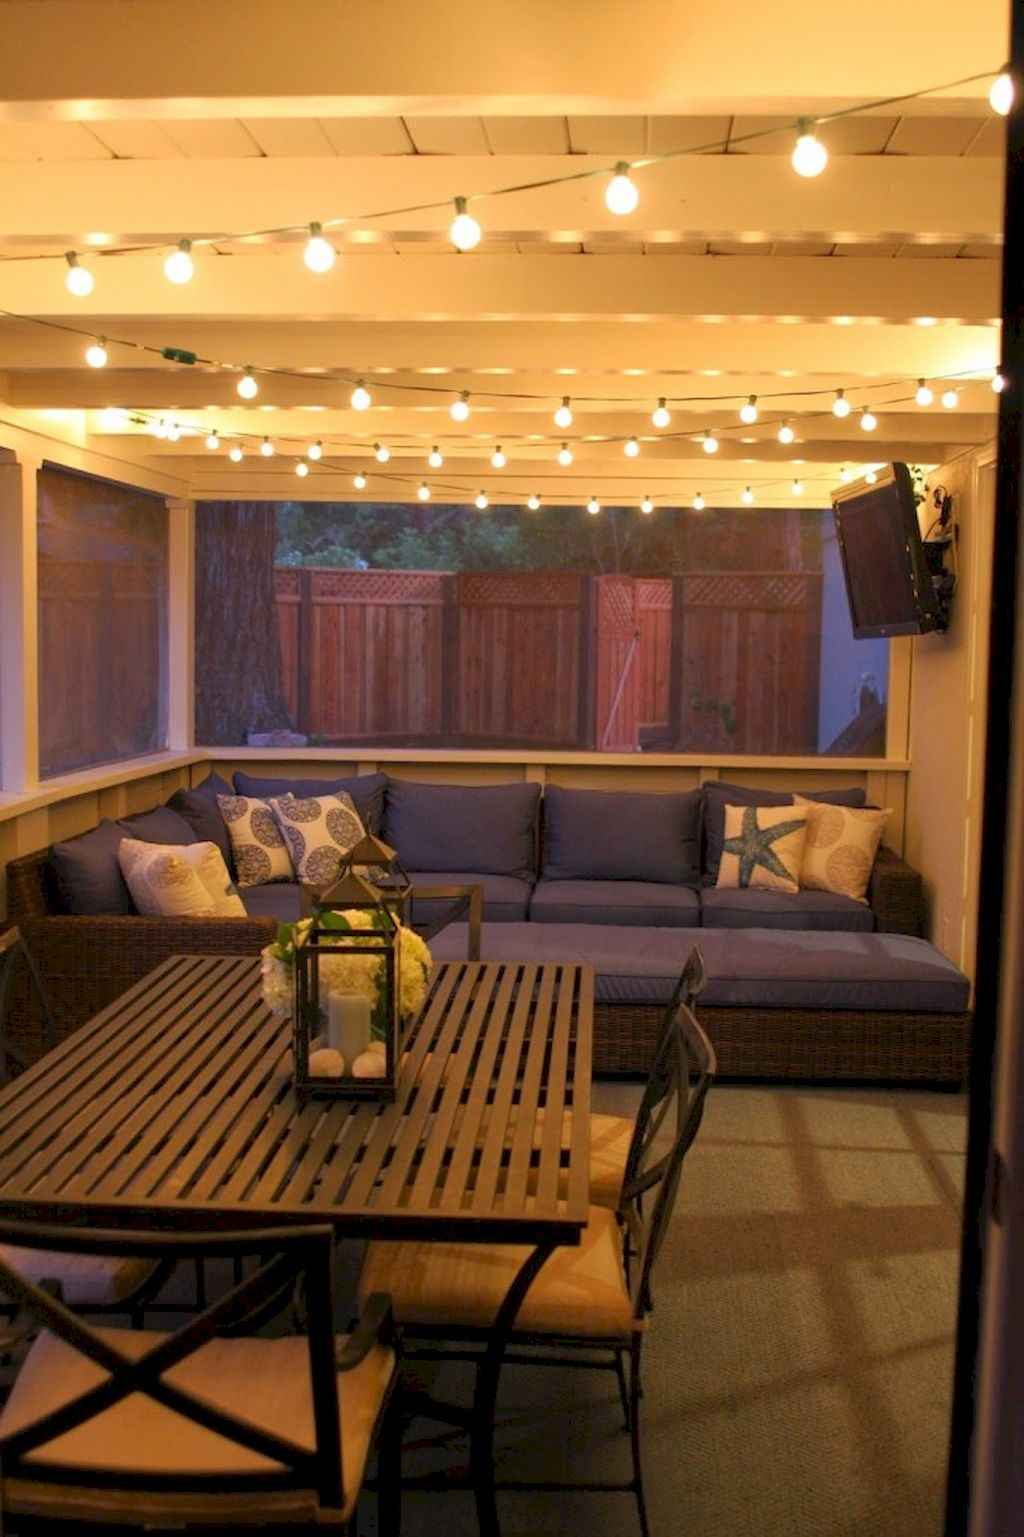 Cleverly diy porch patio decorating ideas (35)